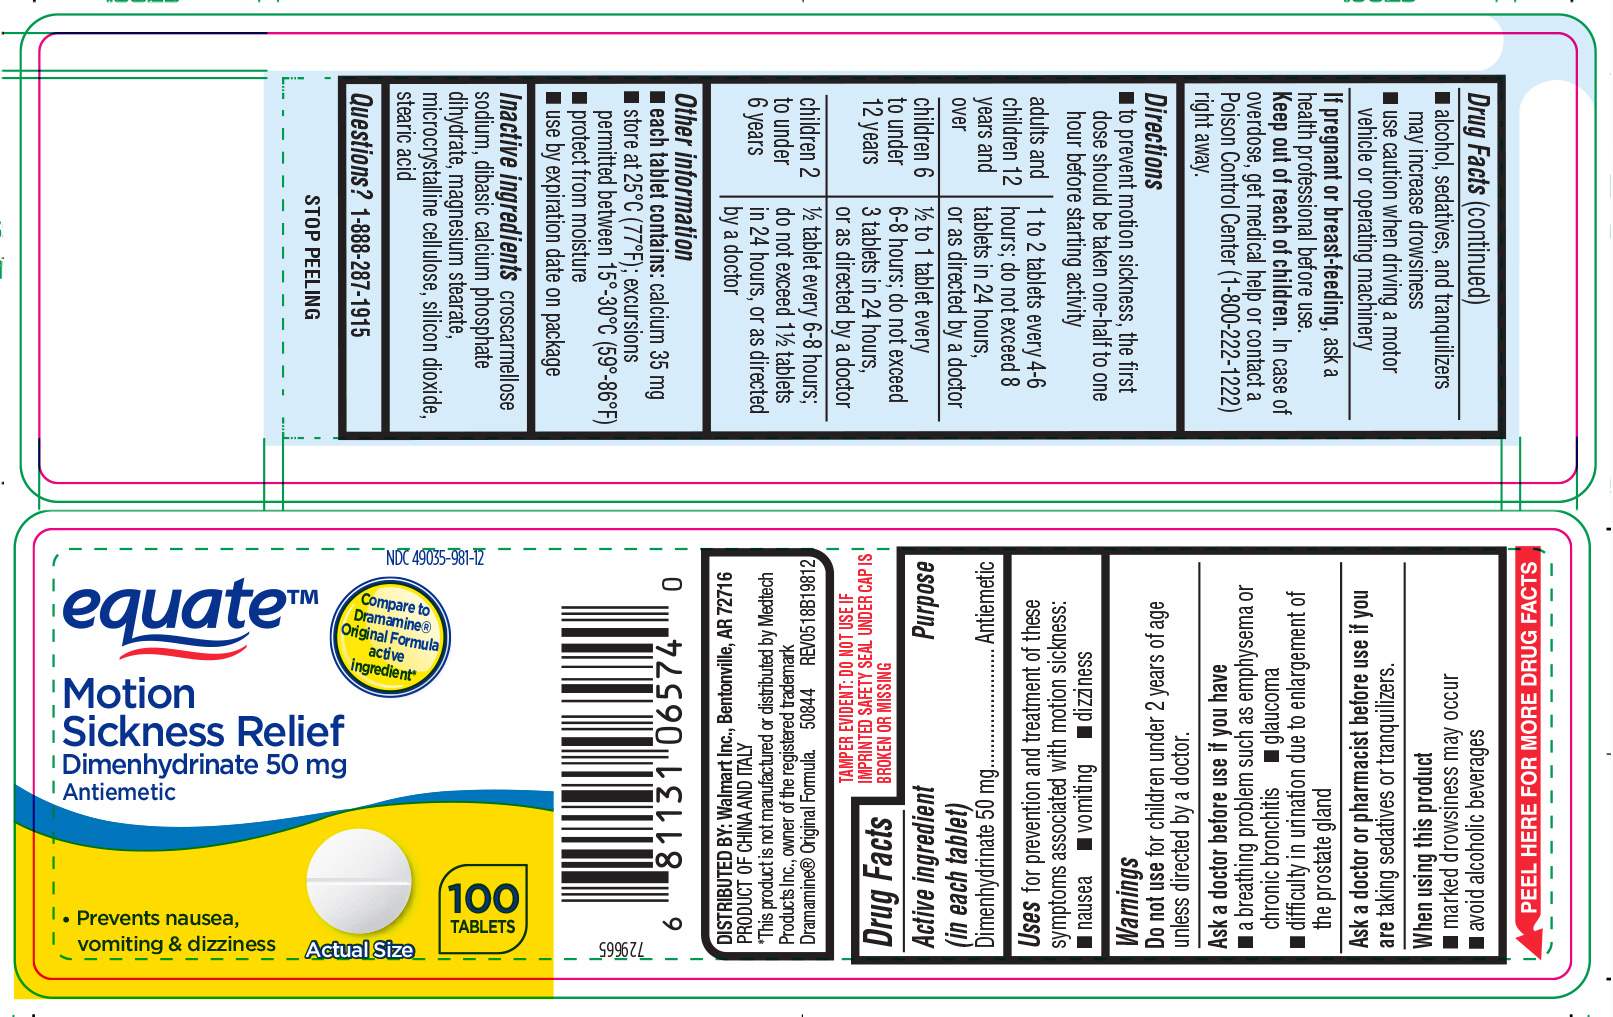 Motion Sickness Relief (Dimenhydrinate) Tablet [Wal-mart Stores Inc]